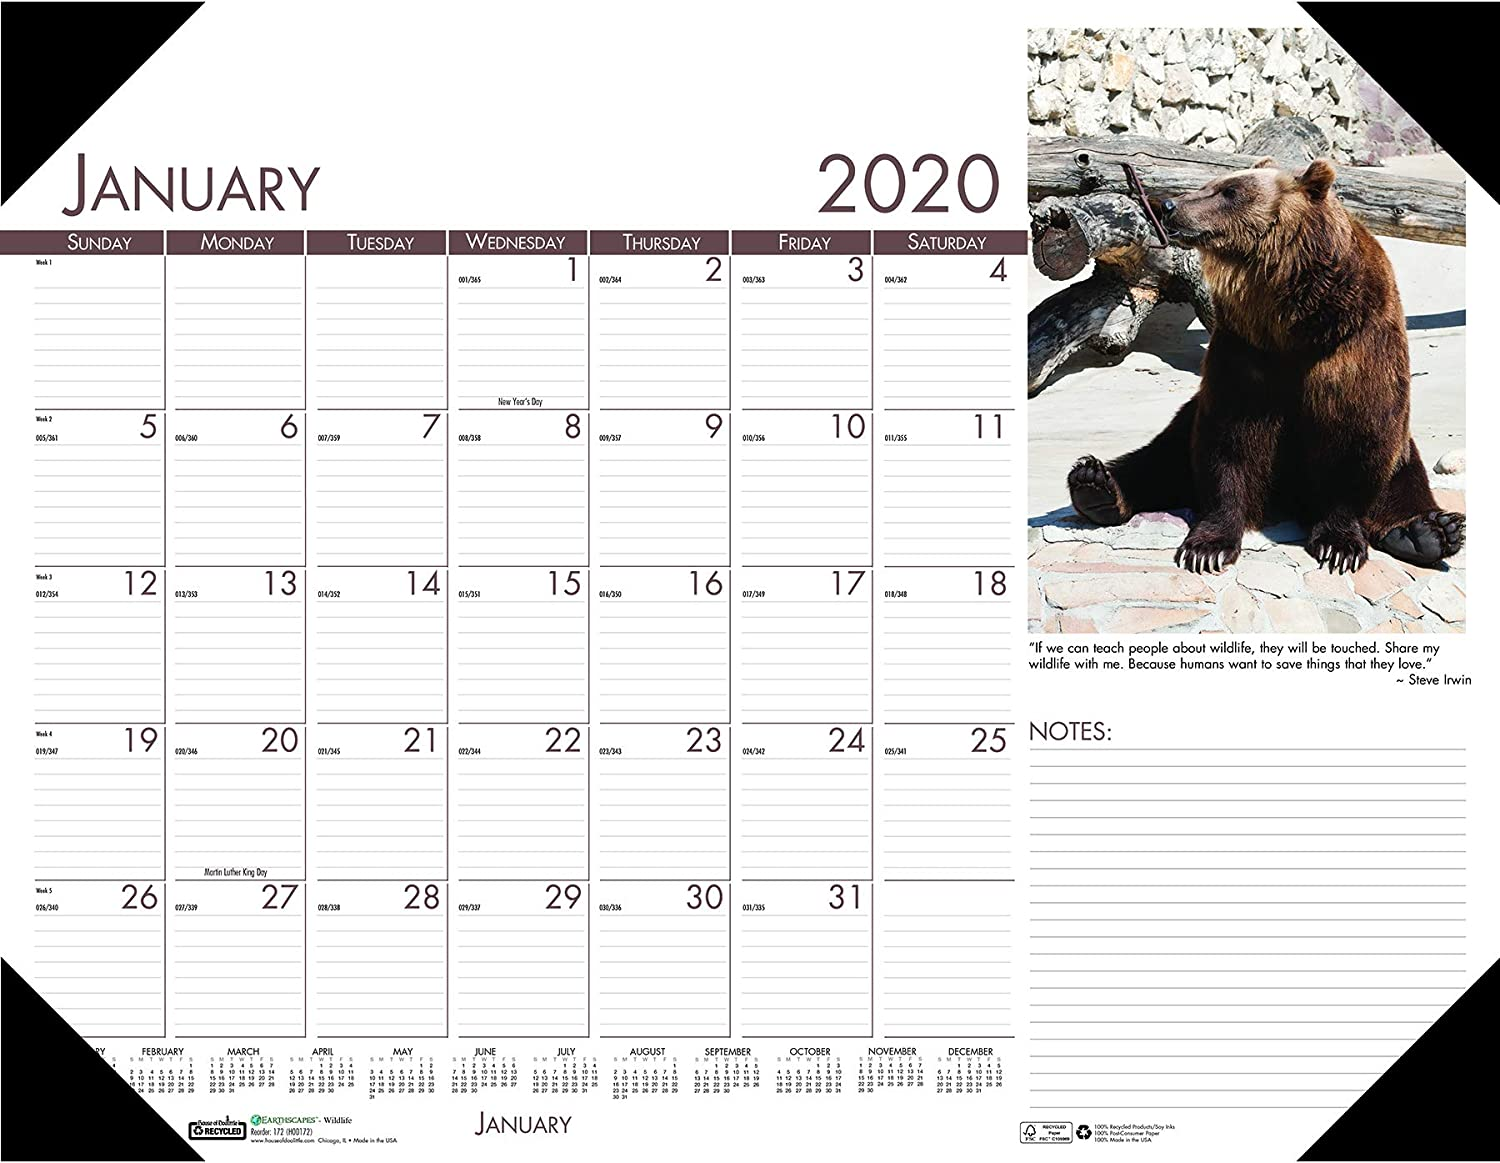 House of Doolittle 2020 Monthly Desk Pad Calendar, Earthscapes Wildlife, 22 x 17 Inches, January - December (HOD172-20)